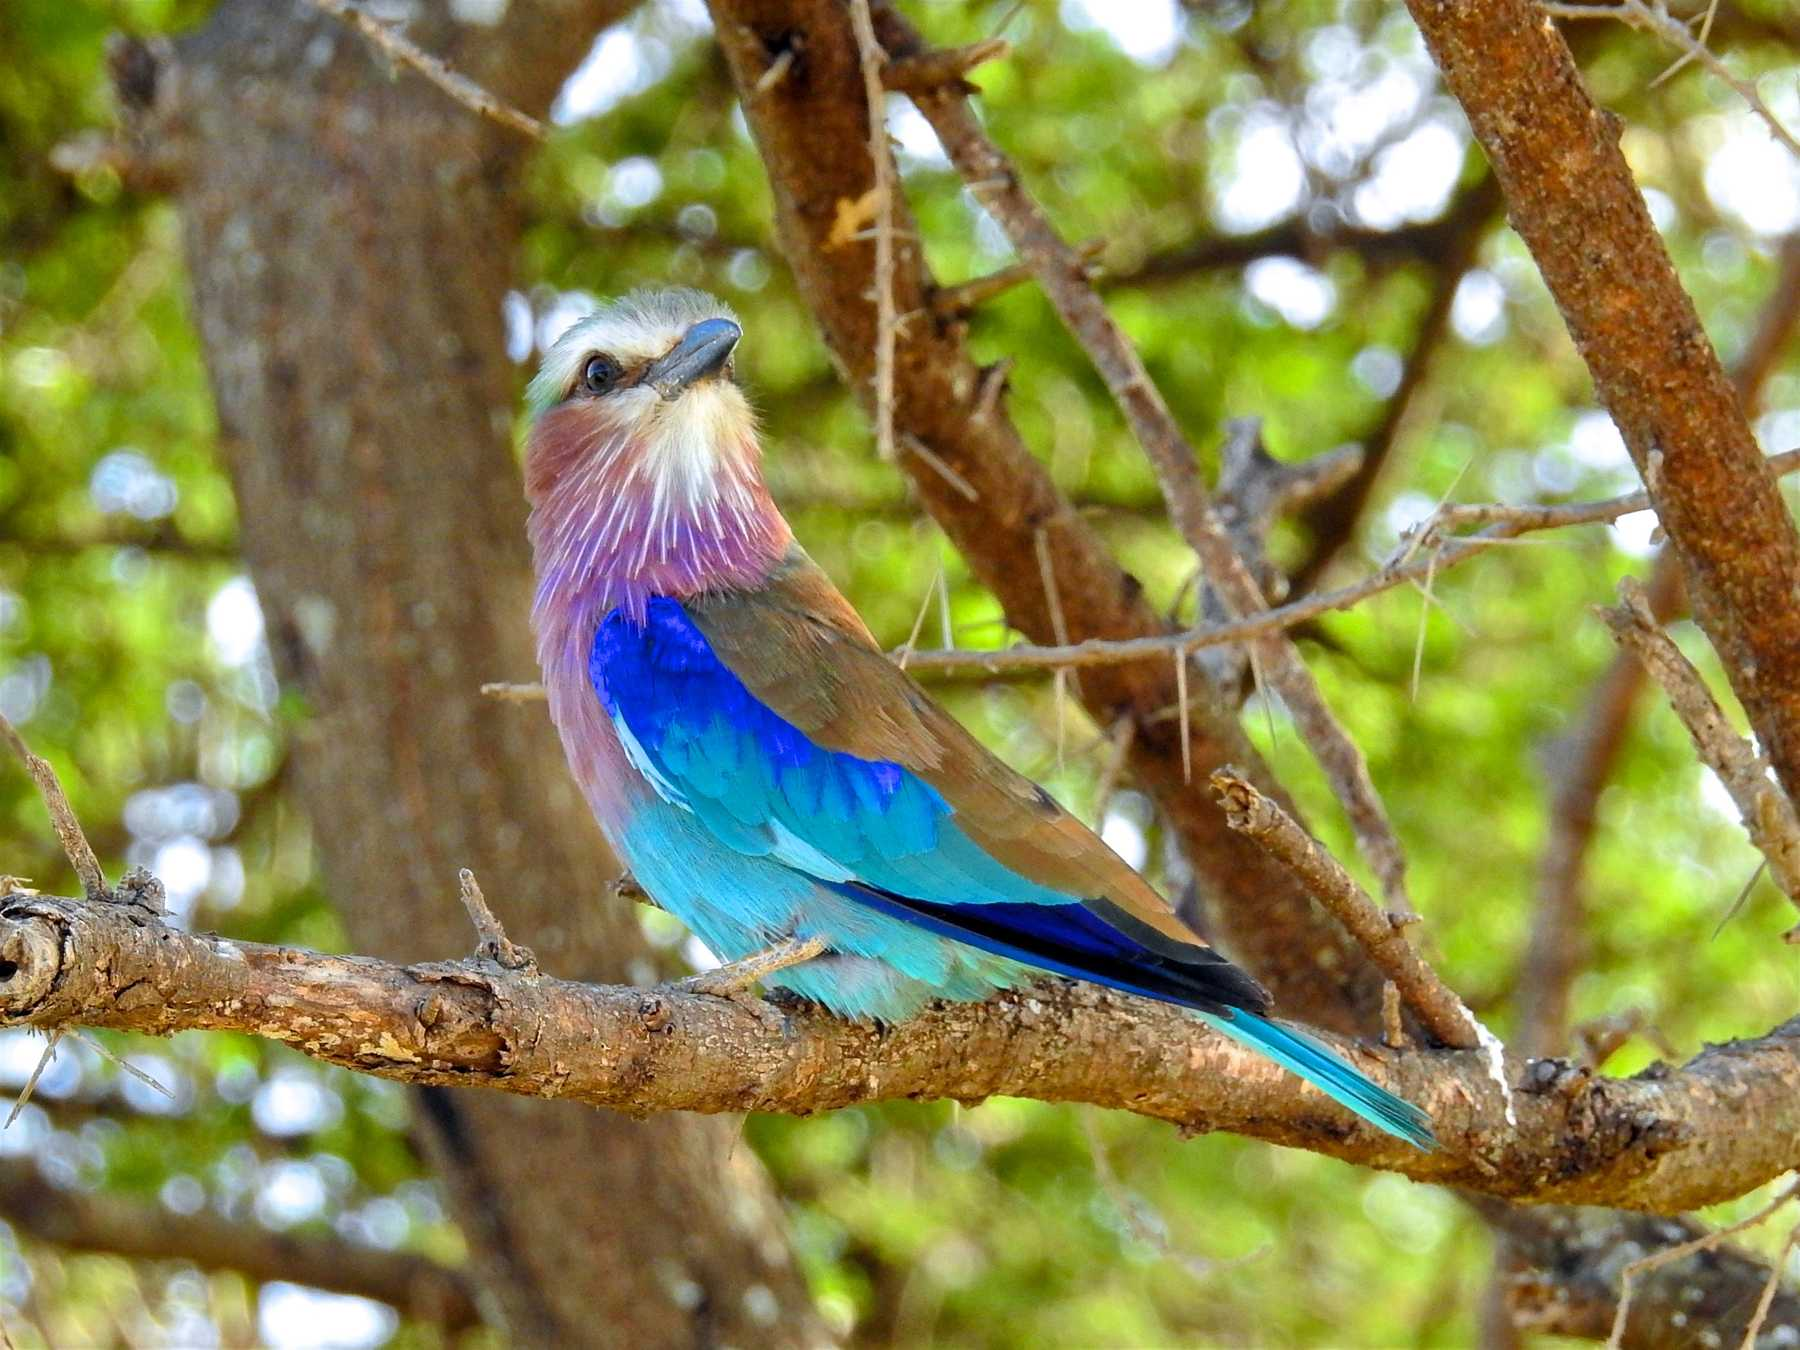 Tanzania Lilac Breasted Roller